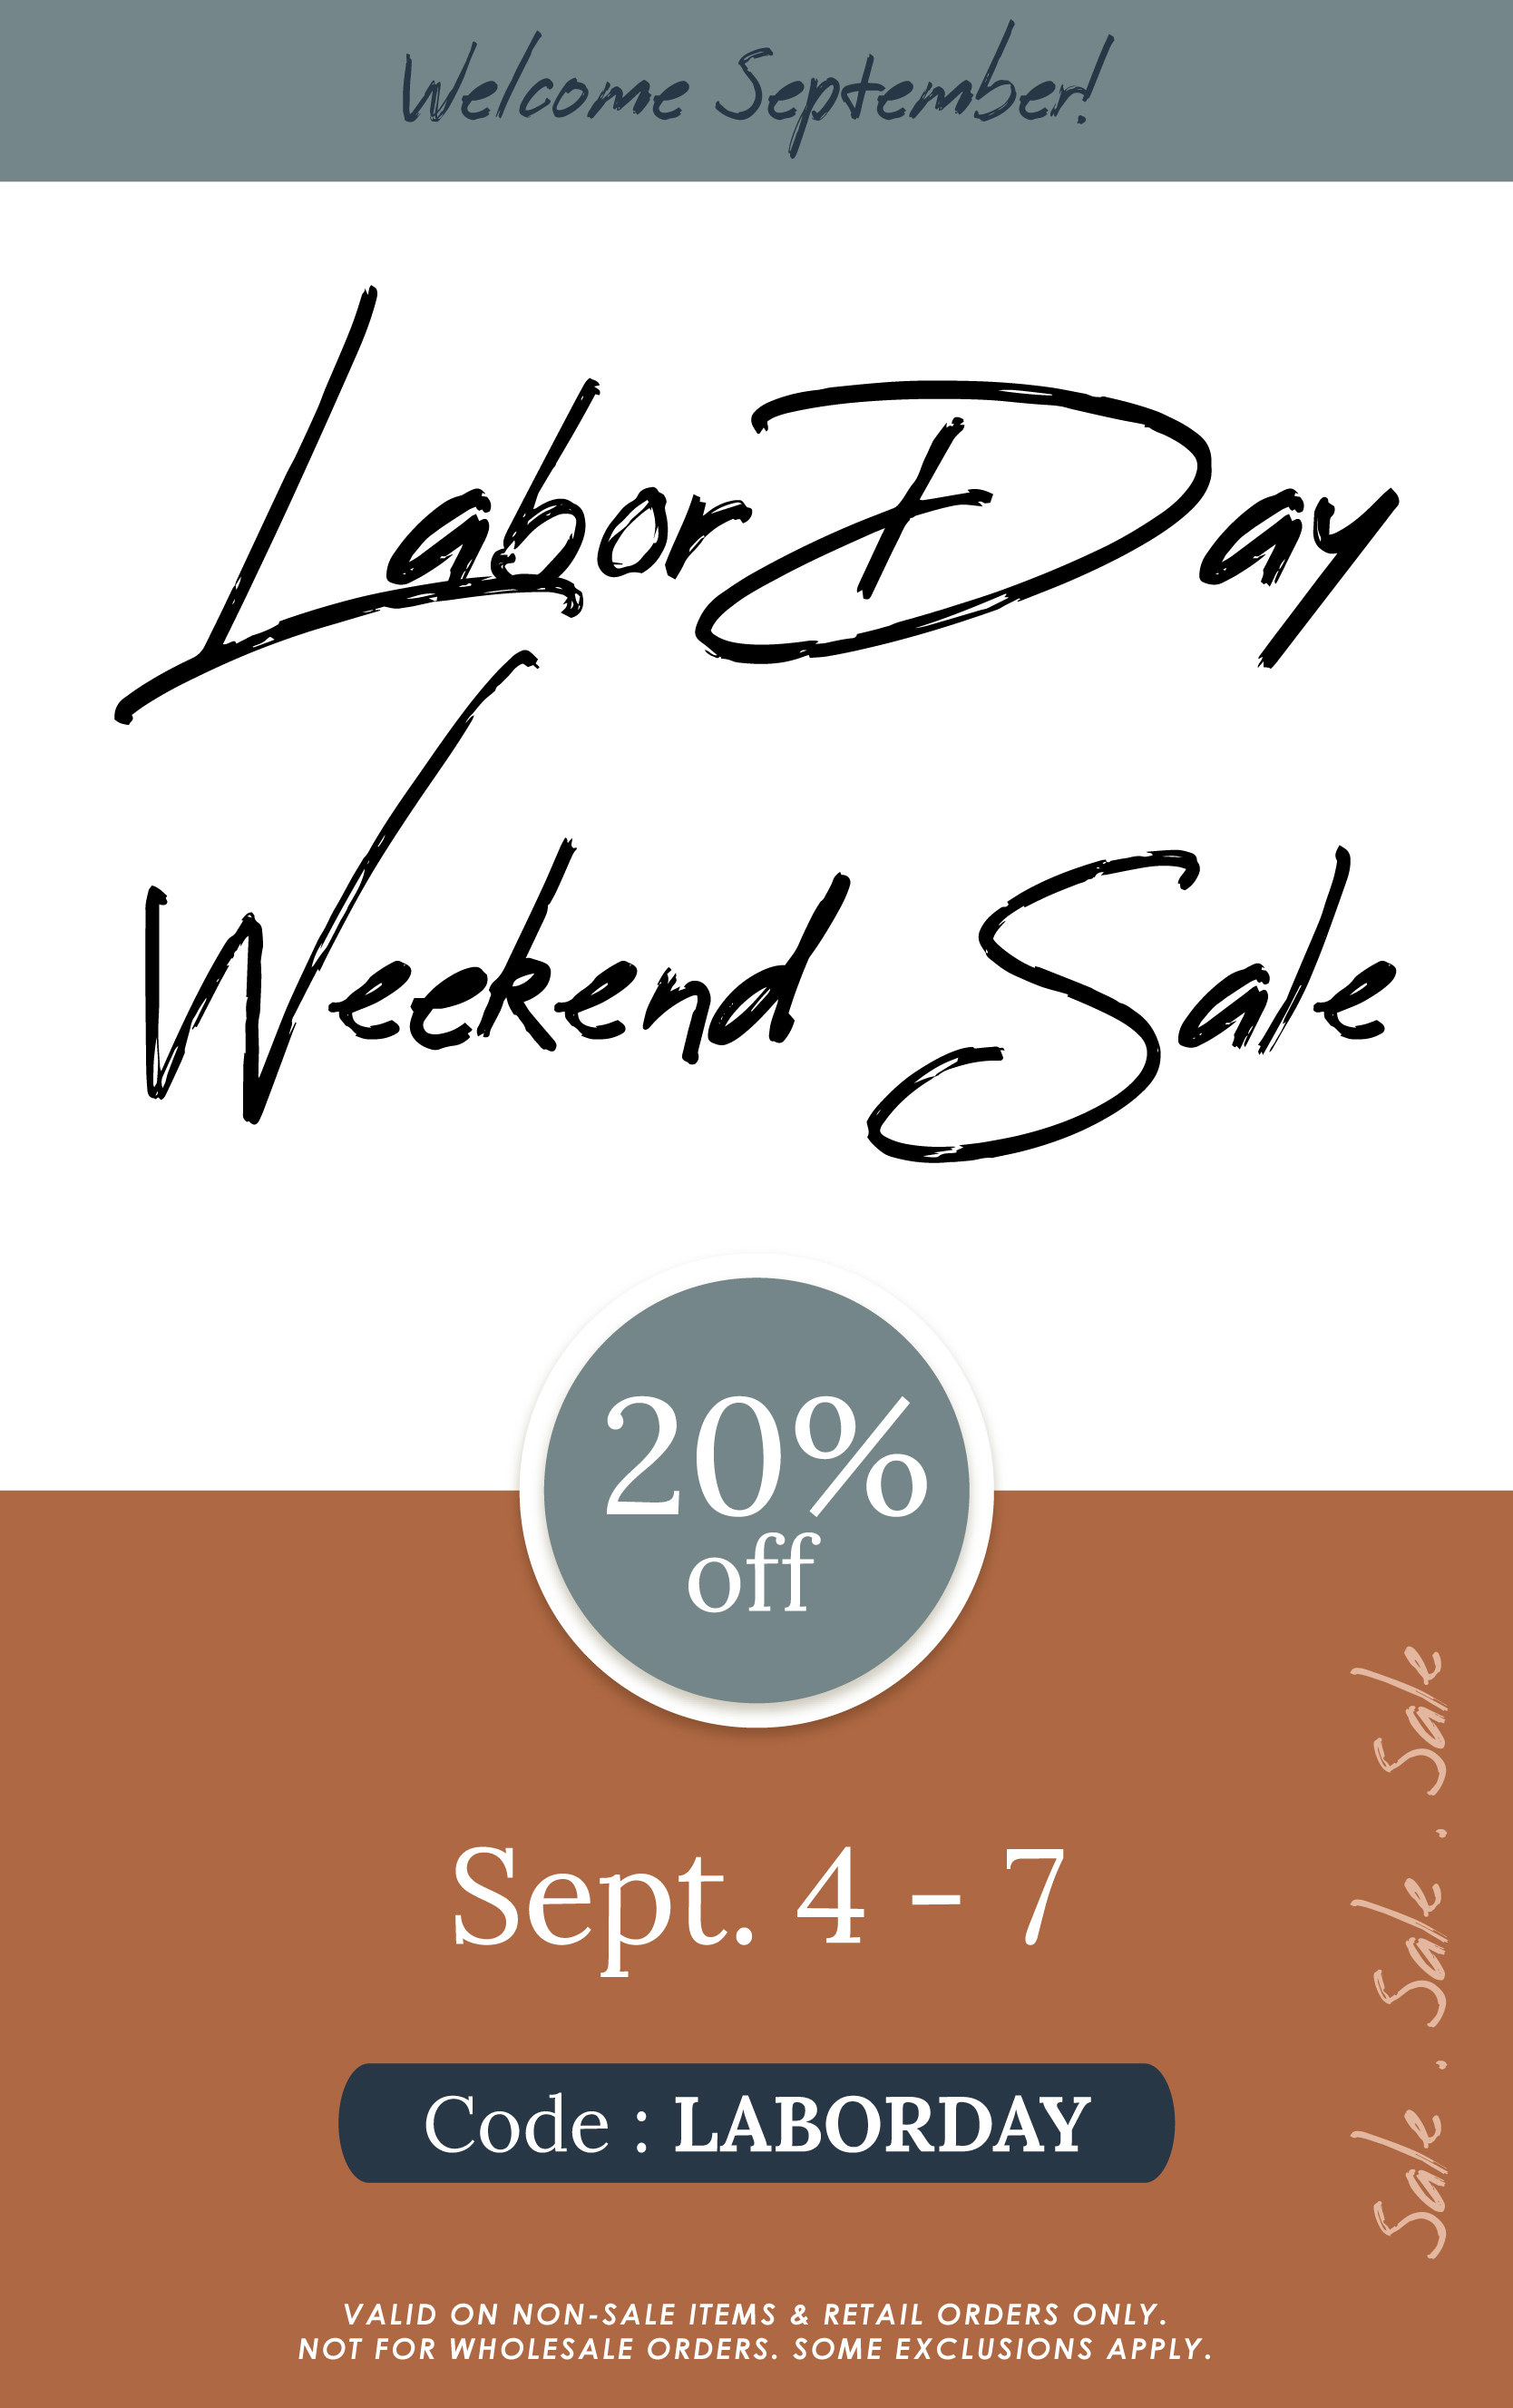 Happy Labor Day Weekend!  Enjoy 20% Off non-sale items now until Labor Day!  Have a fantastic weekend!